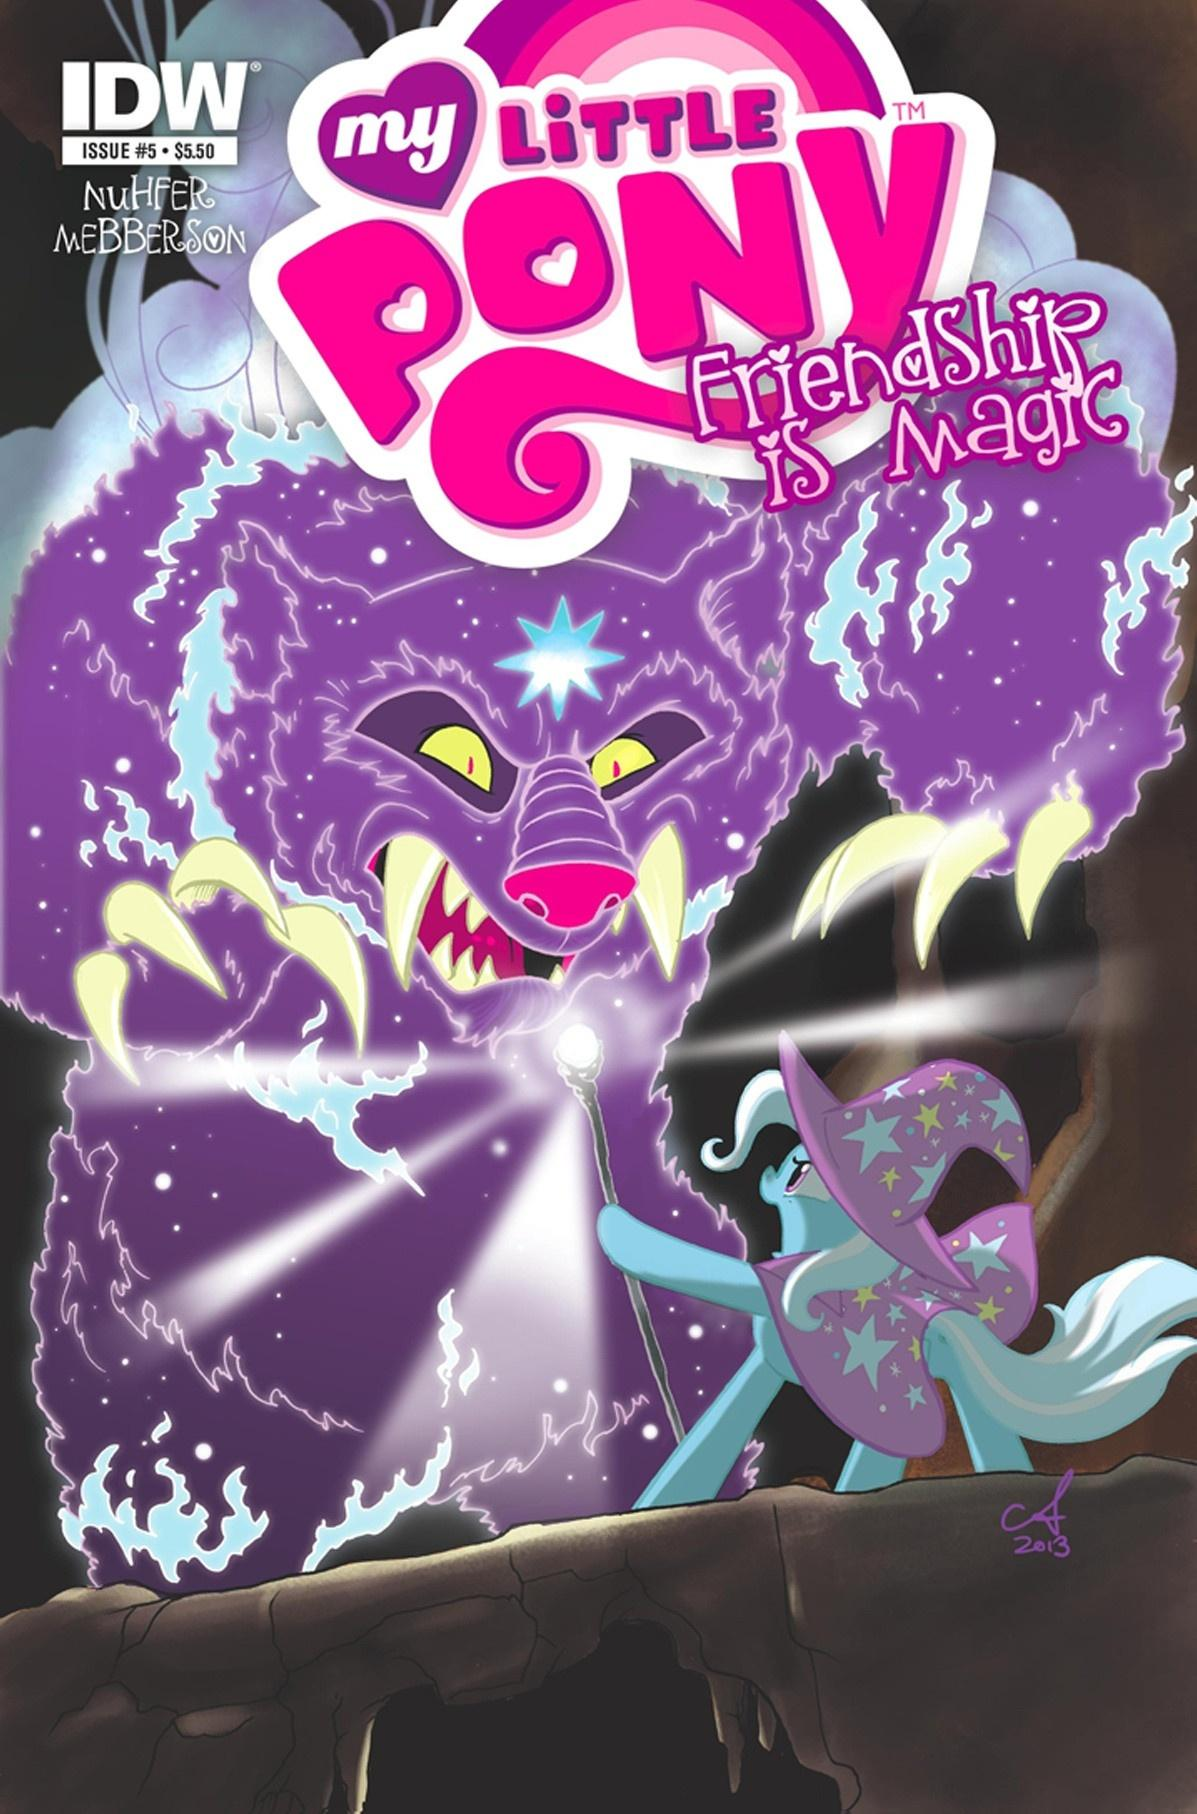 Hot topic mlpfim 5 variant my little pony friendship is magic